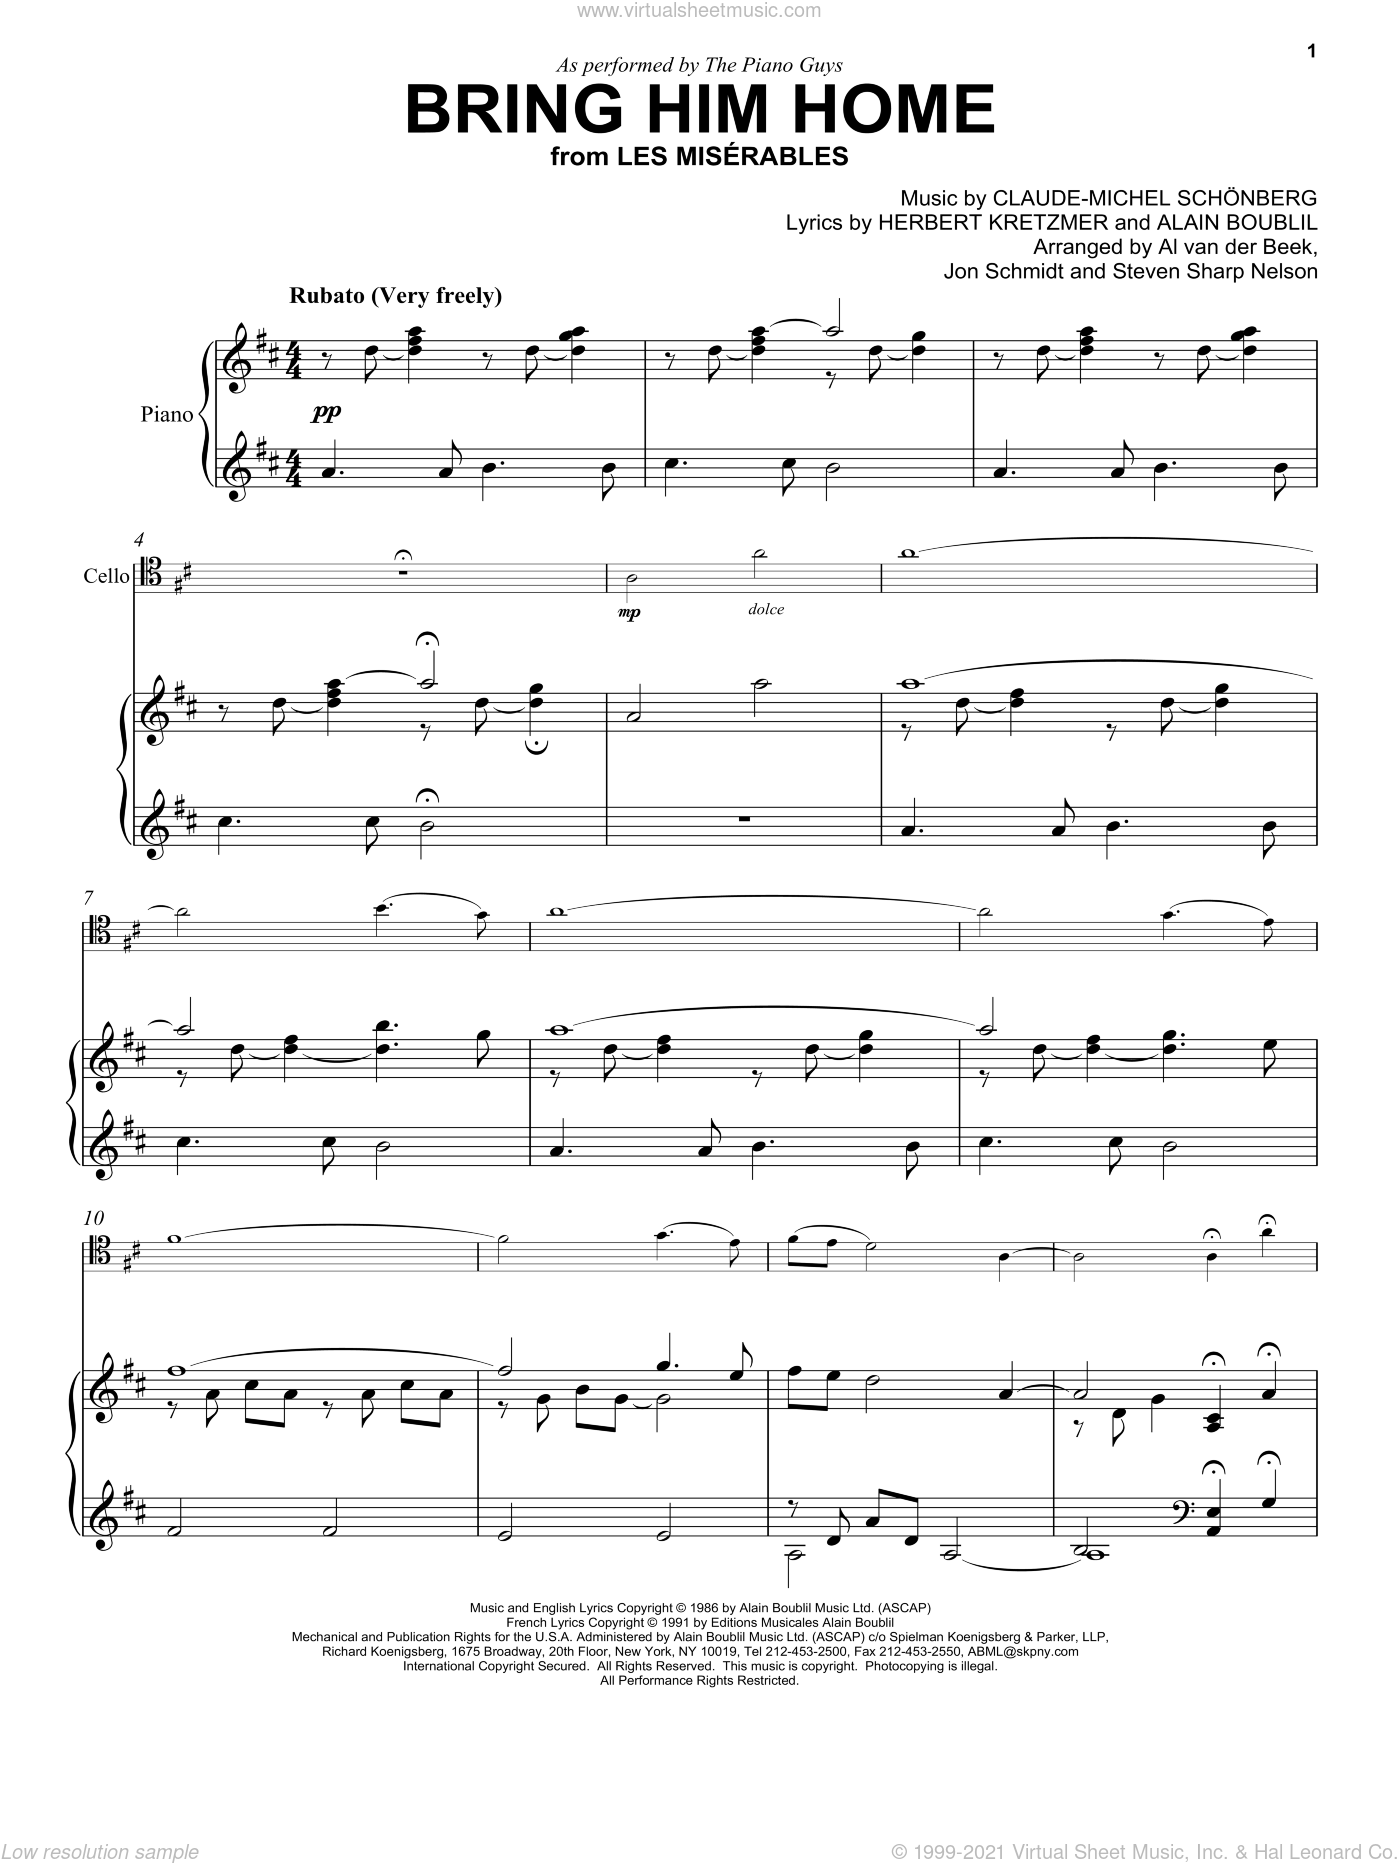 Bring Him Home sheet music for piano solo by The Piano Guys, Alain Boublil and Claude-Michel Schonberg, classical score, intermediate. Score Image Preview.